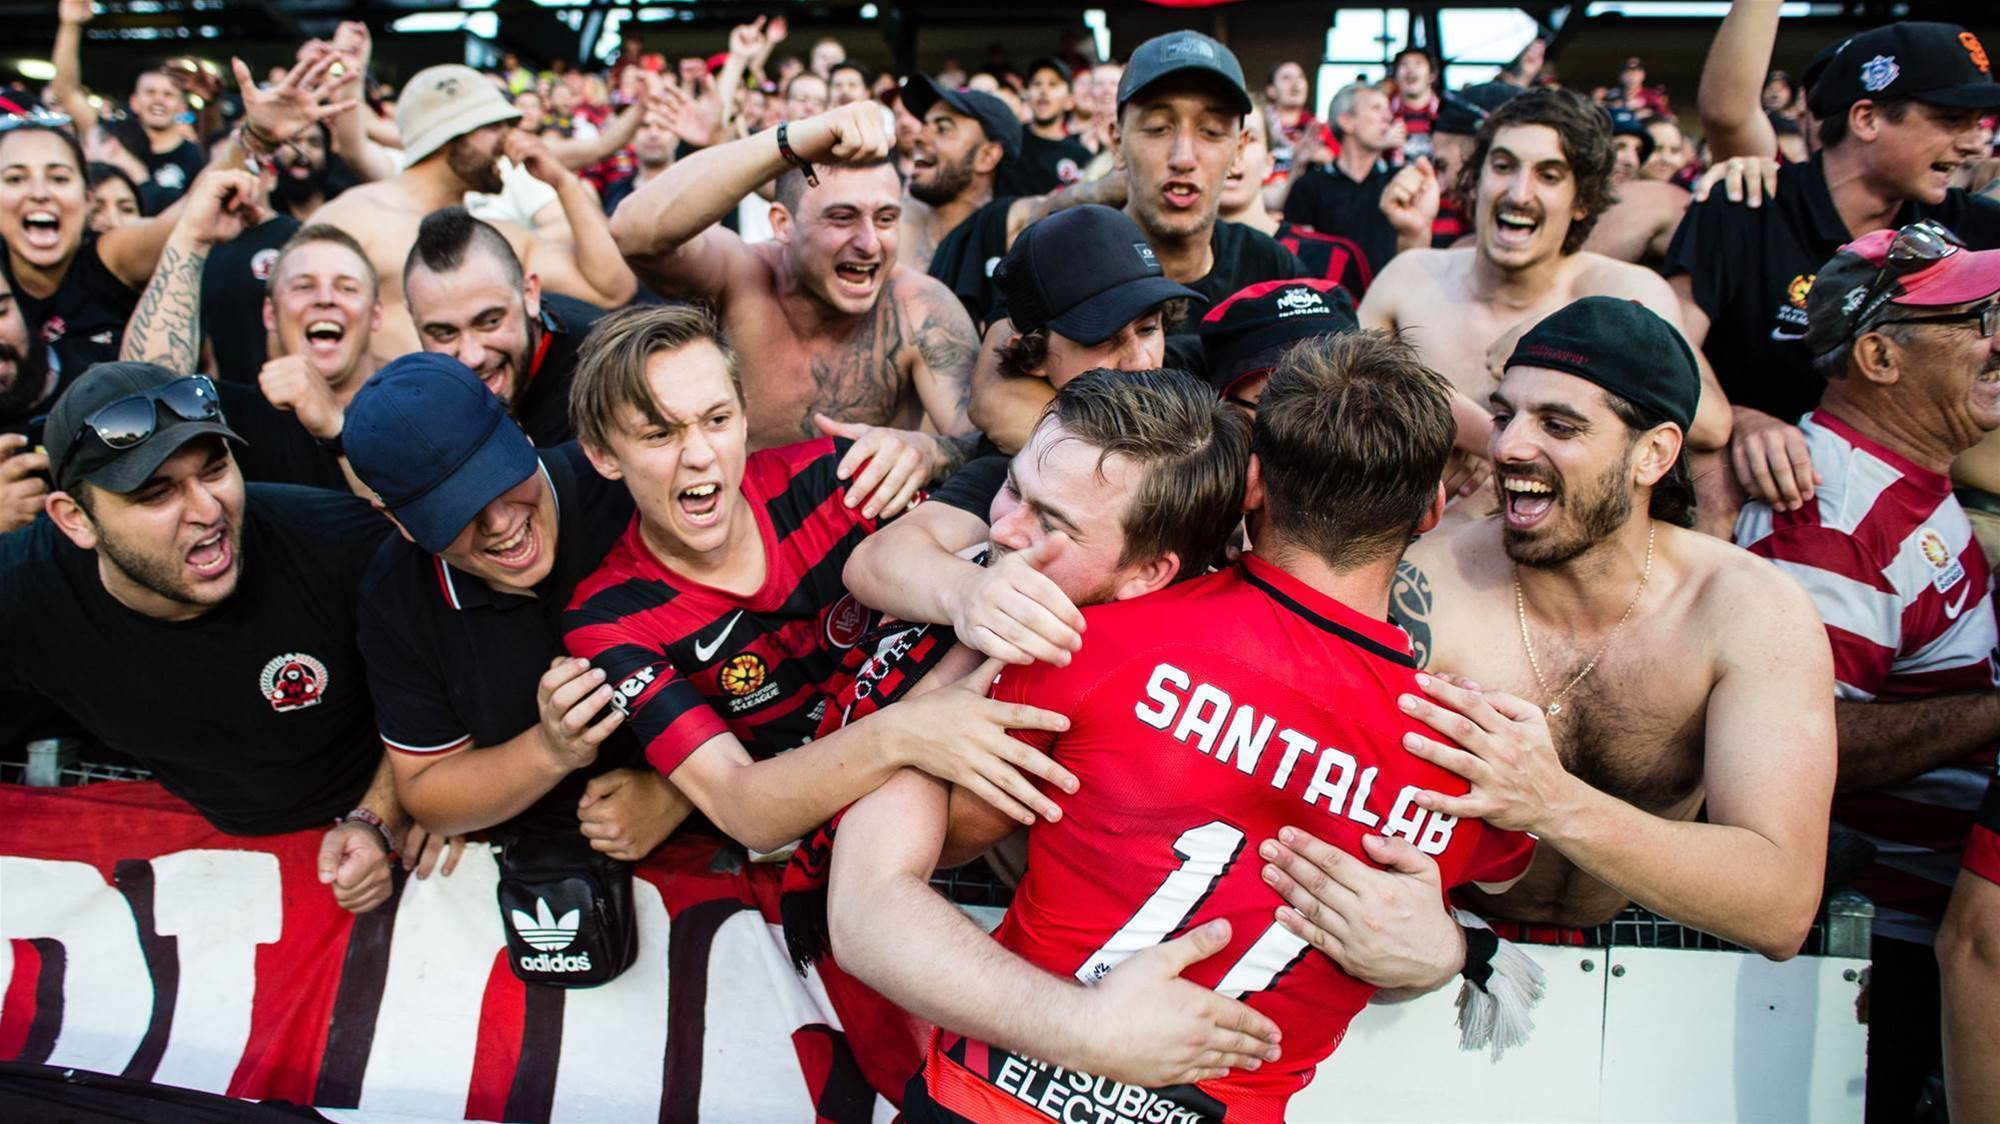 Wanderers: Fans pic special